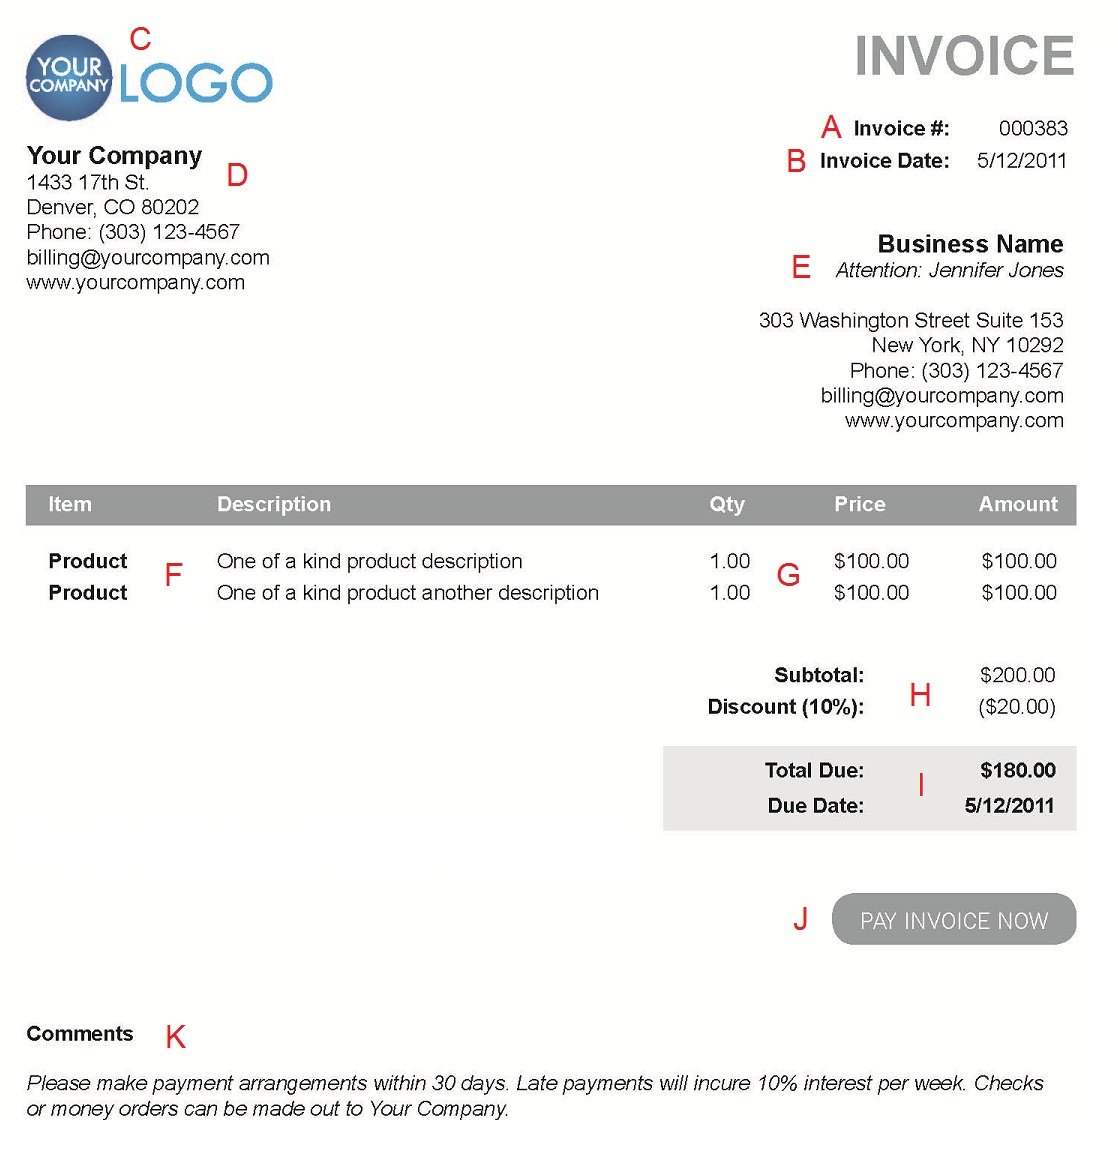 Pxworkoutfreeus  Stunning The  Different Sections Of An Electronic Payment Invoice With Fetching A  With Appealing Invoice And Accounting Software For Small Business Also Tnt Invoicing In Addition Audi Invoice Pricing And Ubl Invoice As Well As Digital Invoicing Additionally Invoice Software For Mac Free From Paysimplecom With Pxworkoutfreeus  Fetching The  Different Sections Of An Electronic Payment Invoice With Appealing A  And Stunning Invoice And Accounting Software For Small Business Also Tnt Invoicing In Addition Audi Invoice Pricing From Paysimplecom